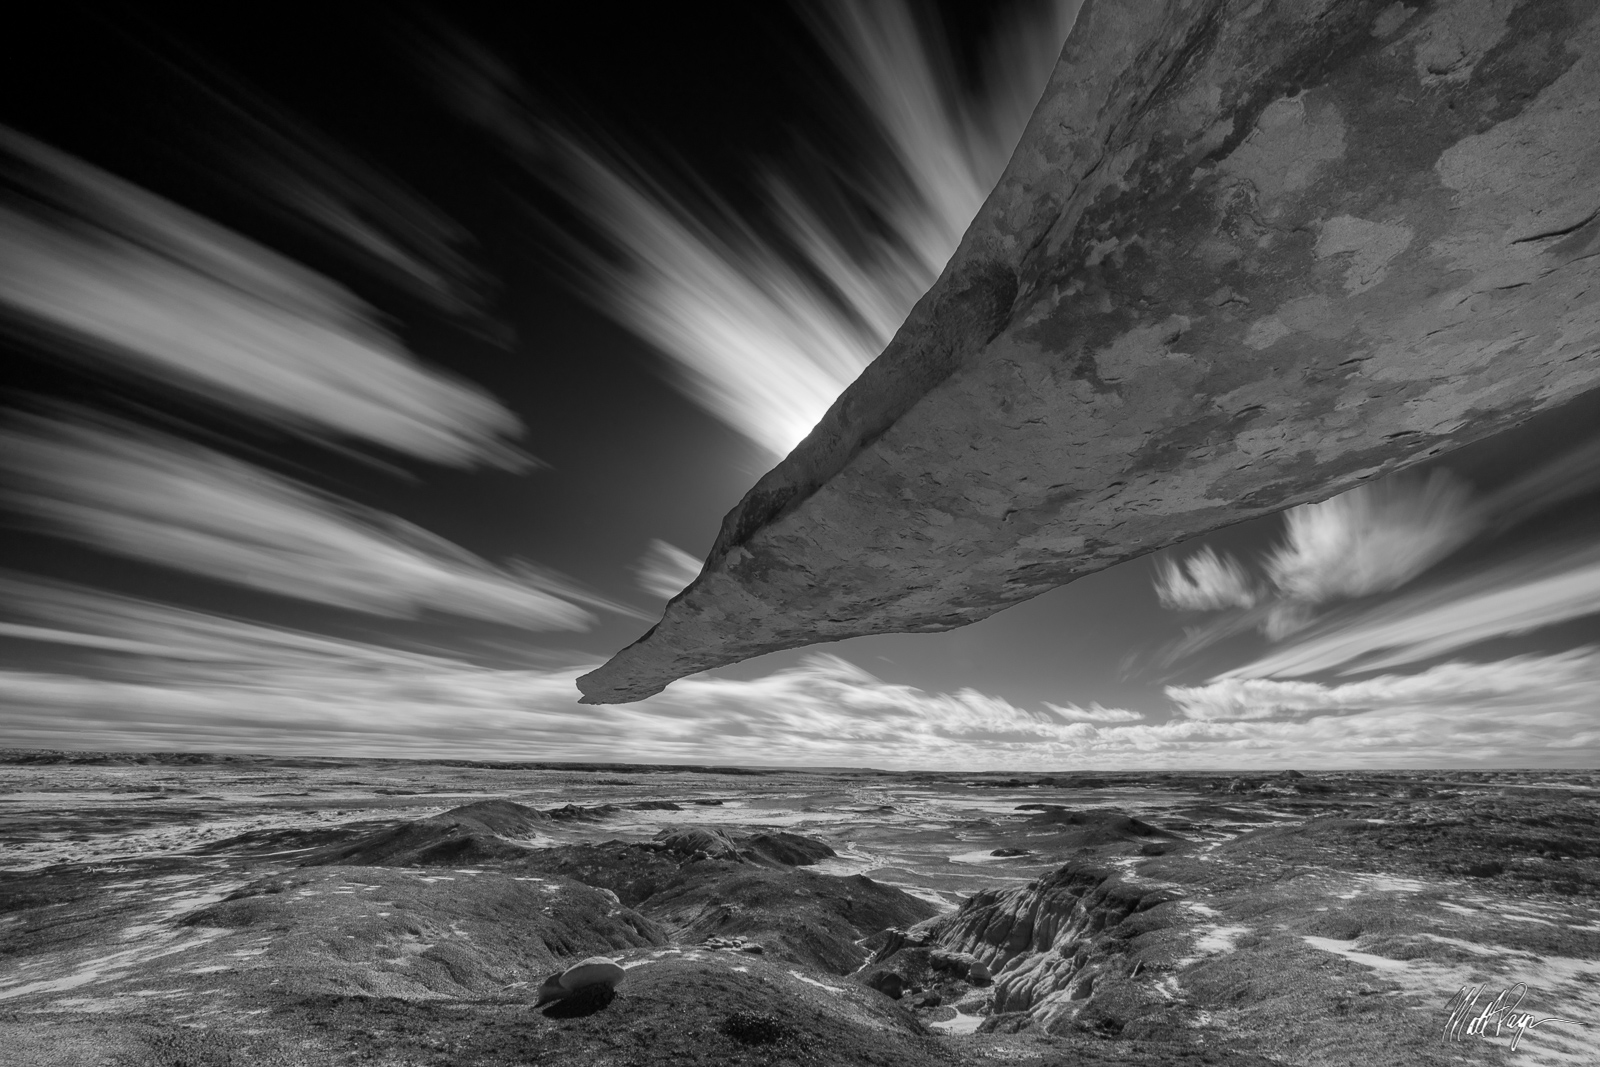 Bisti Badlands, Clouds, King of Wings, Landscape, Long Exposure, New Mexico, desert, photo